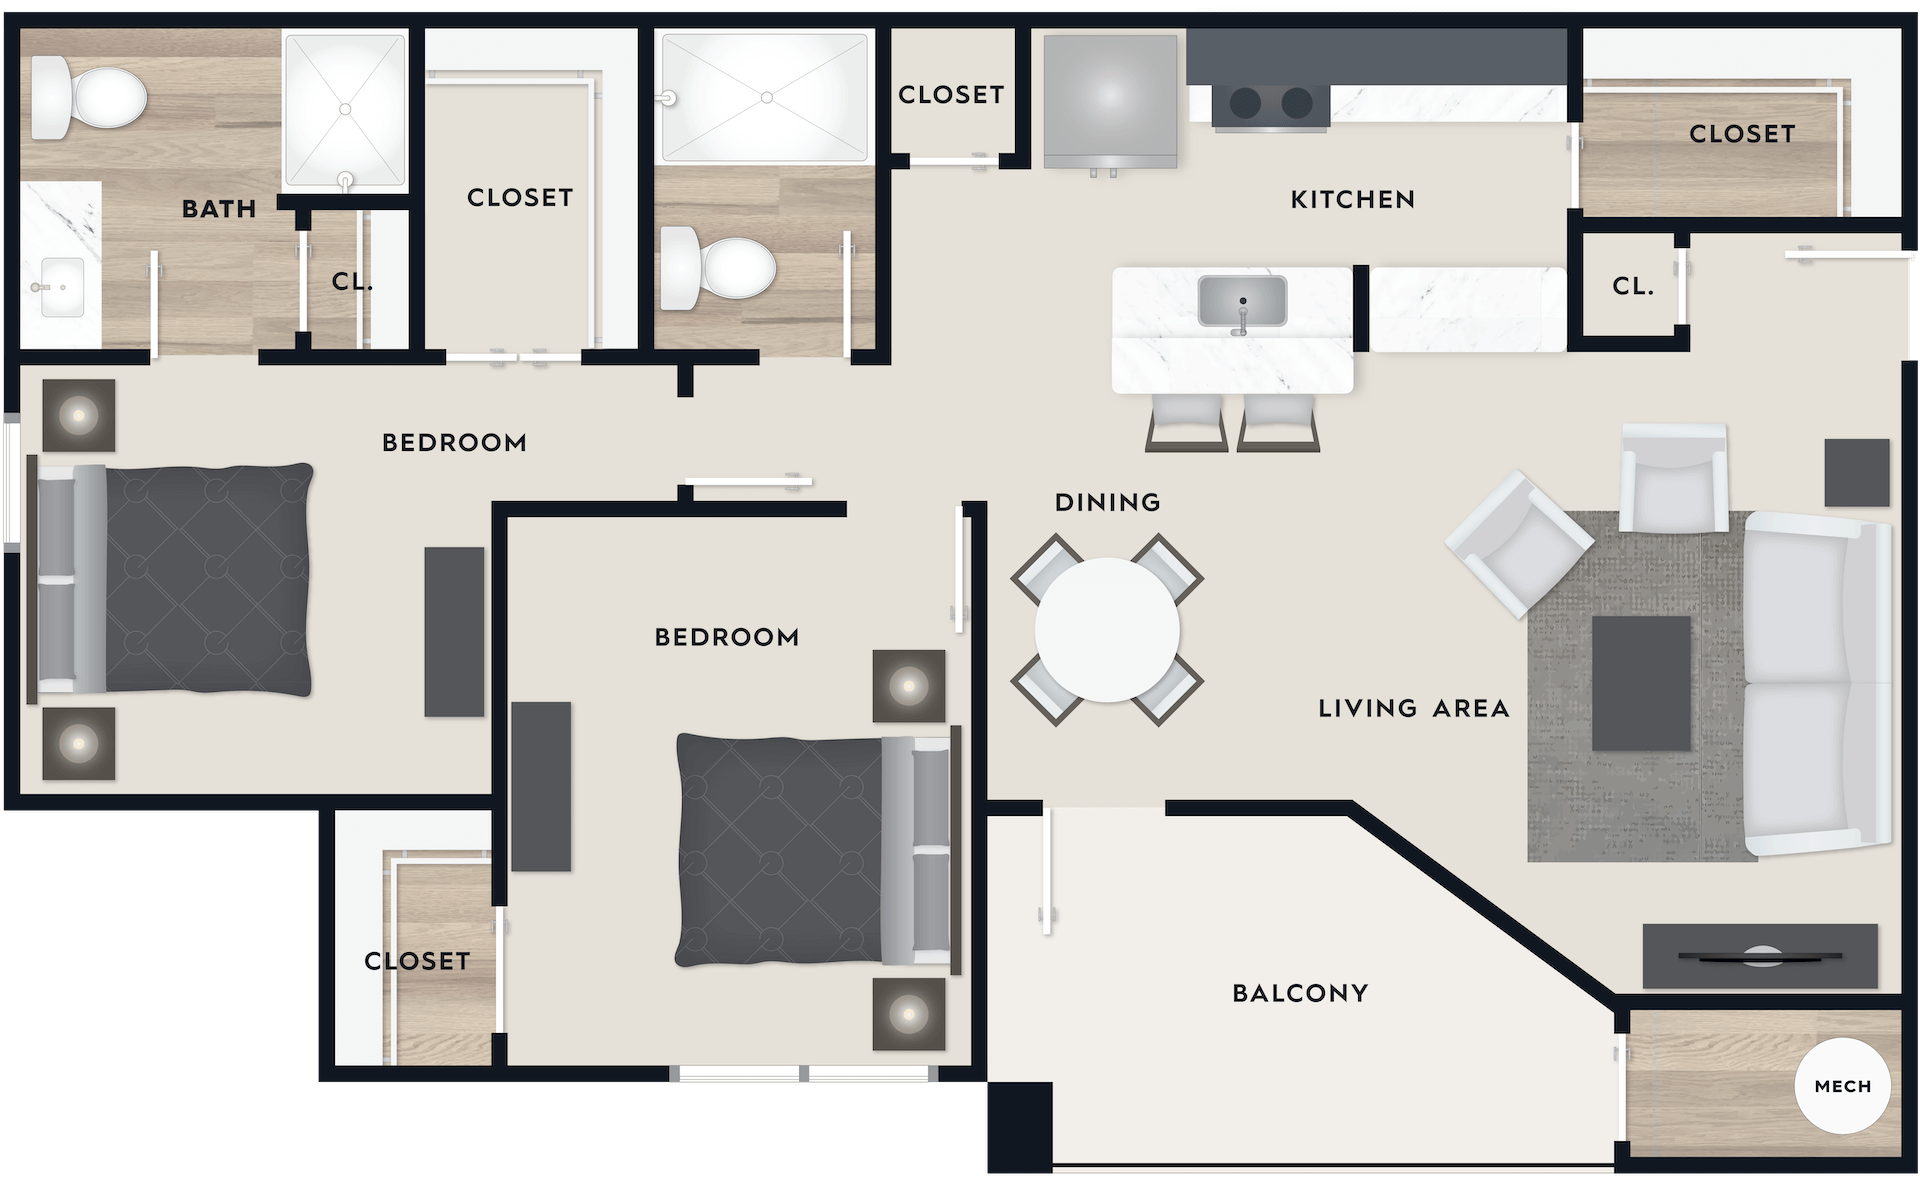 B2 floor plan, 1,068 square feet, 2 beds with walk-in closets, 2 baths, with a balcony